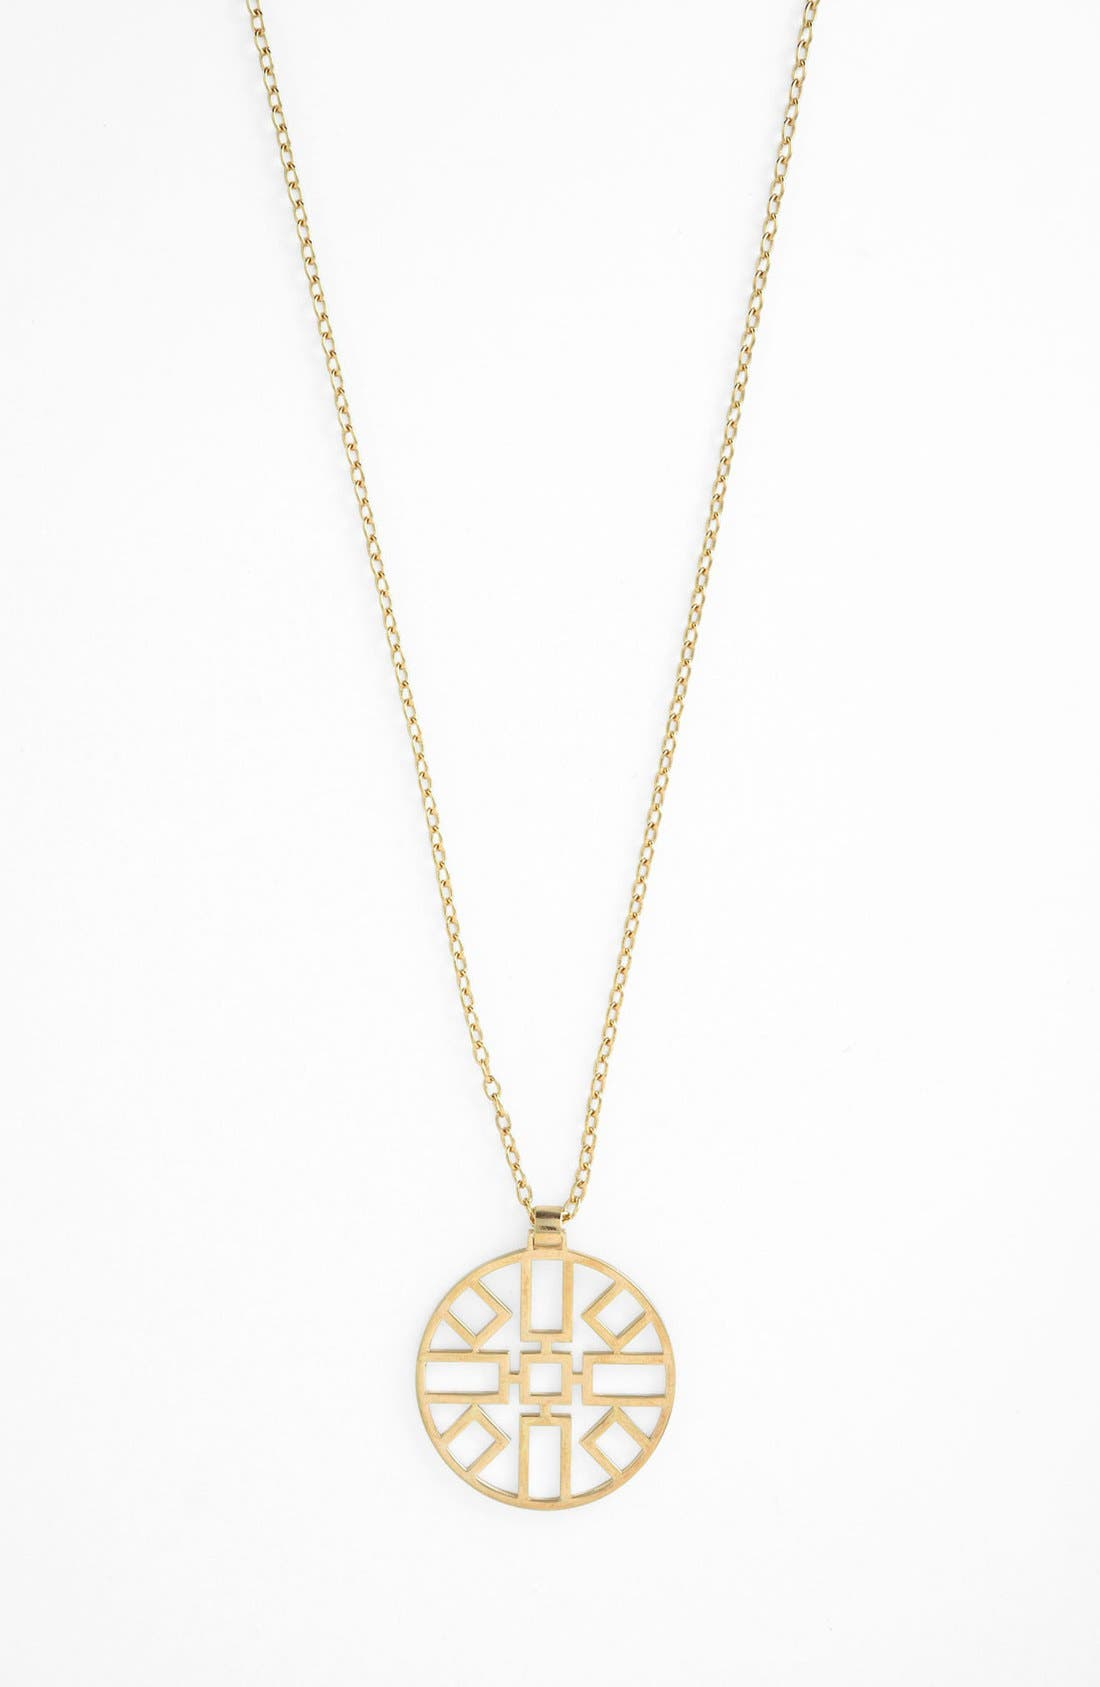 Alternate Image 1 Selected - Tory Burch 'Jordan' Necklace